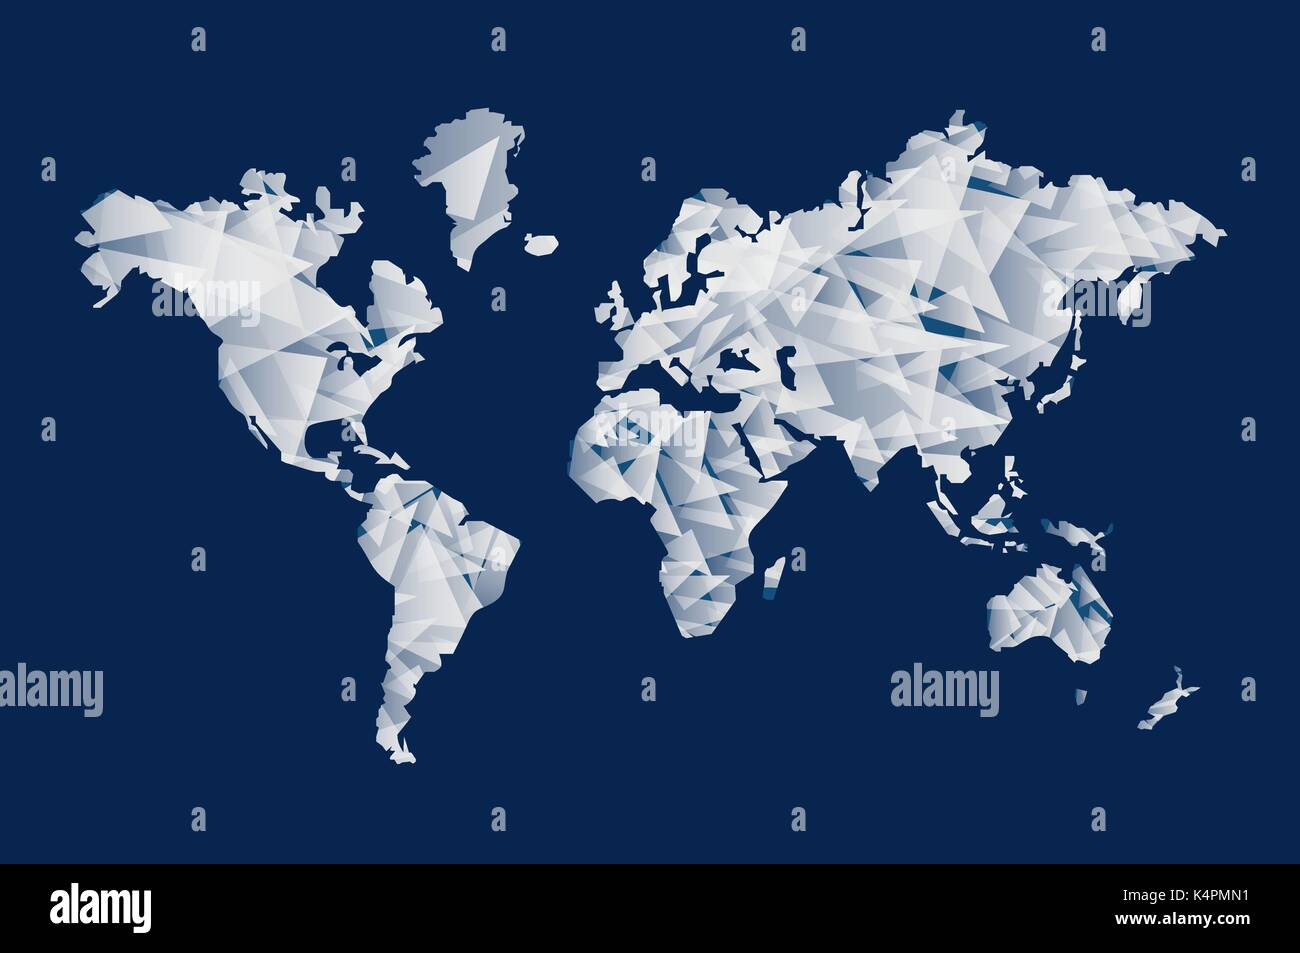 Abstract world map illustration template made of triangle shapes abstract world map illustration template made of triangle shapes modern geometric planet silhouette eps10 vector gumiabroncs Gallery